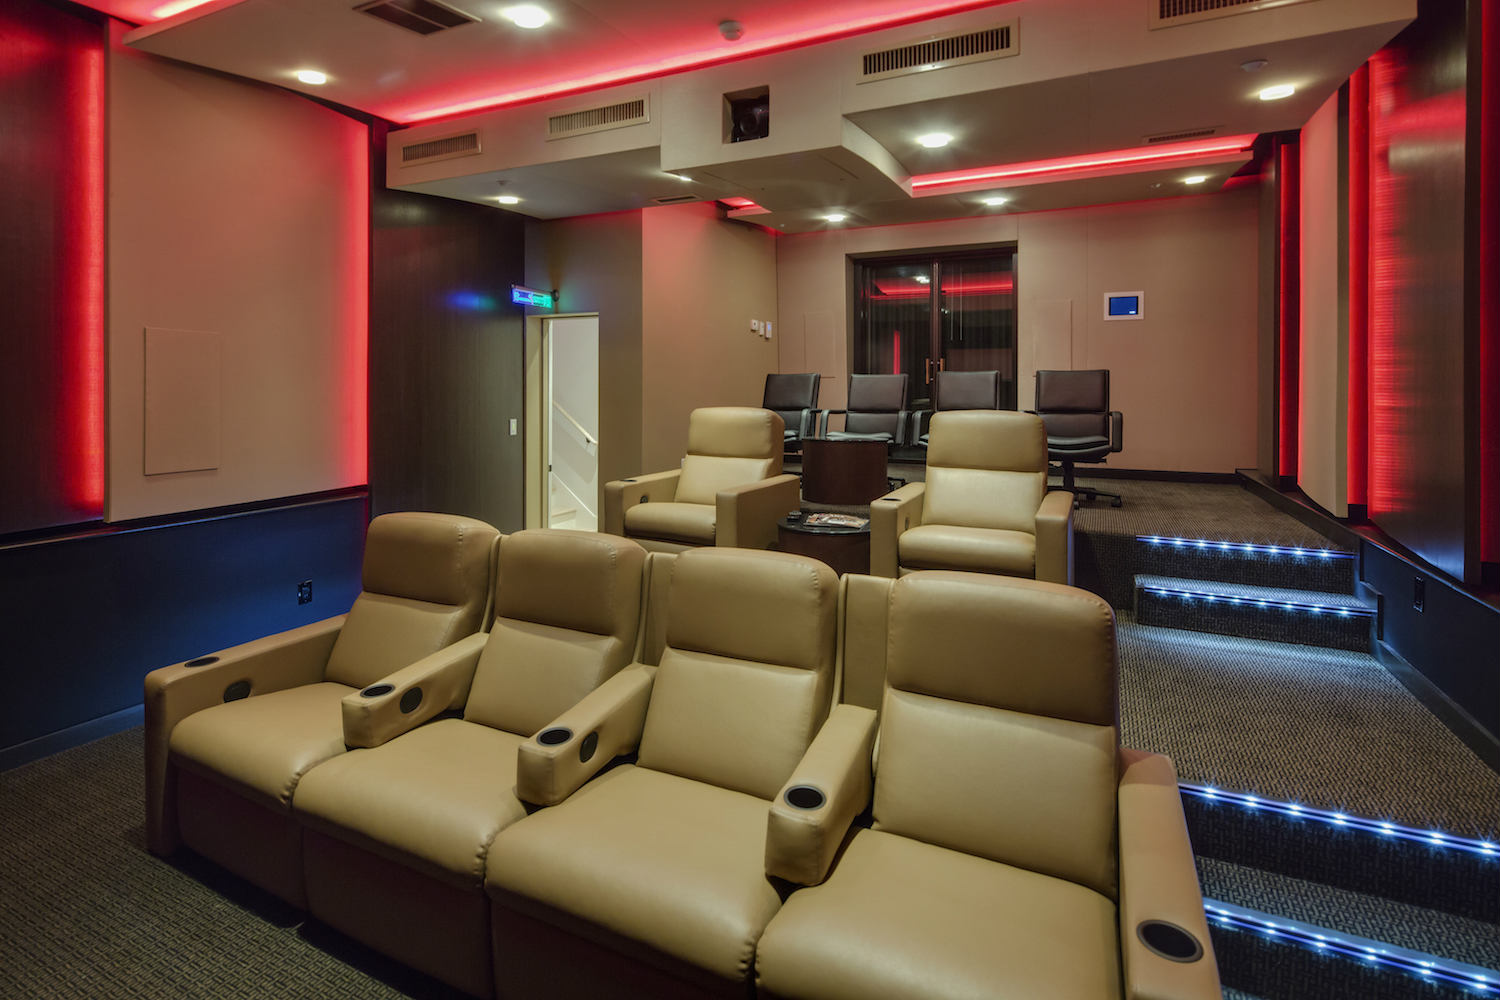 The MacPhails met WSDG to achieve a full up, professionally designed, acoustically superlative residential recording studio for their thriving audio production business. Home Theater.